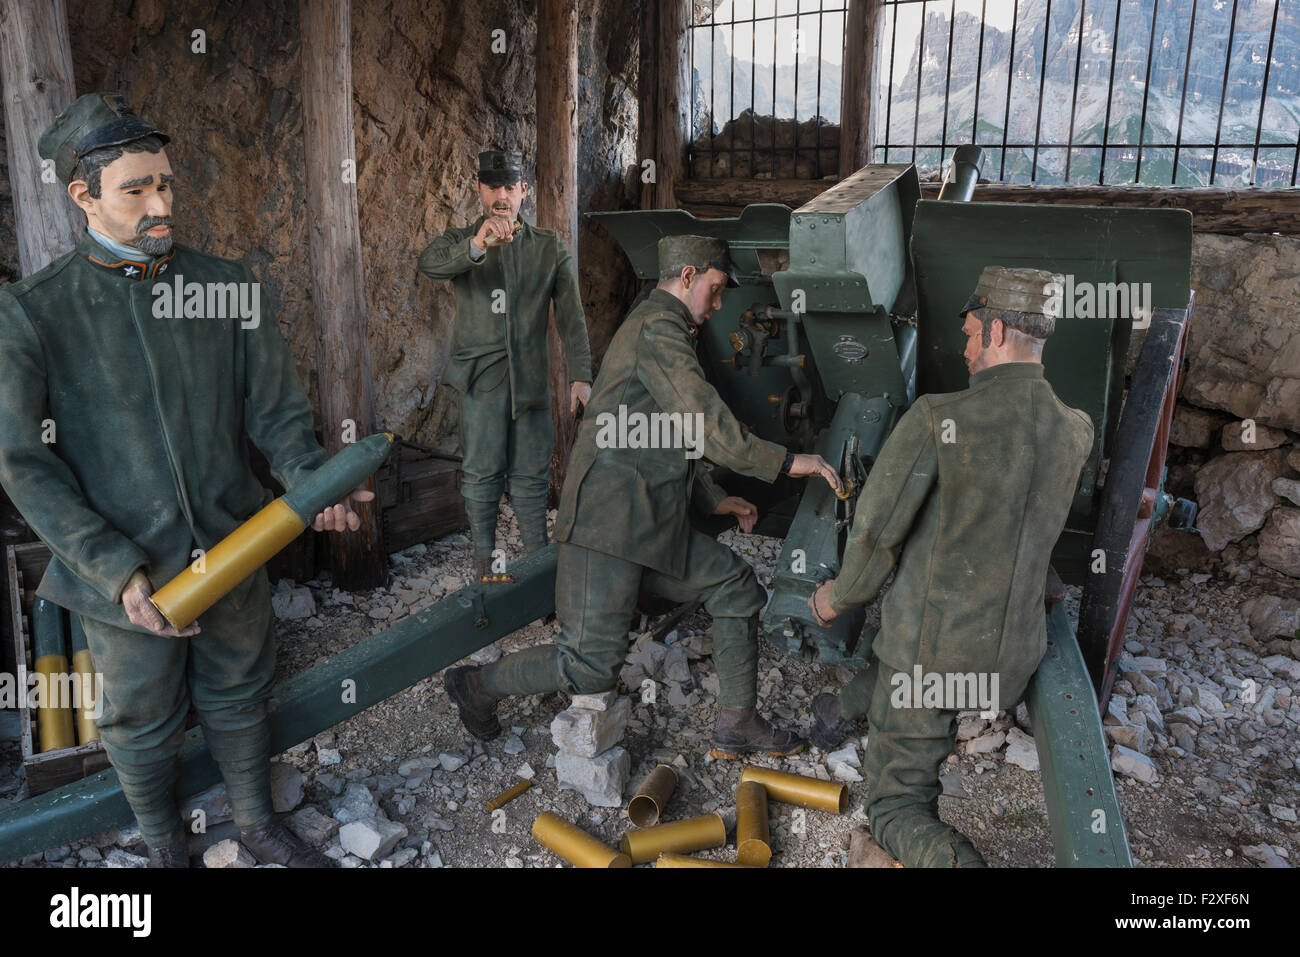 WWI outdoor museum, soldiers firing grenades, Five Towers, Falzarego Pass, Dolomites, Veneto, Italy - Stock Image